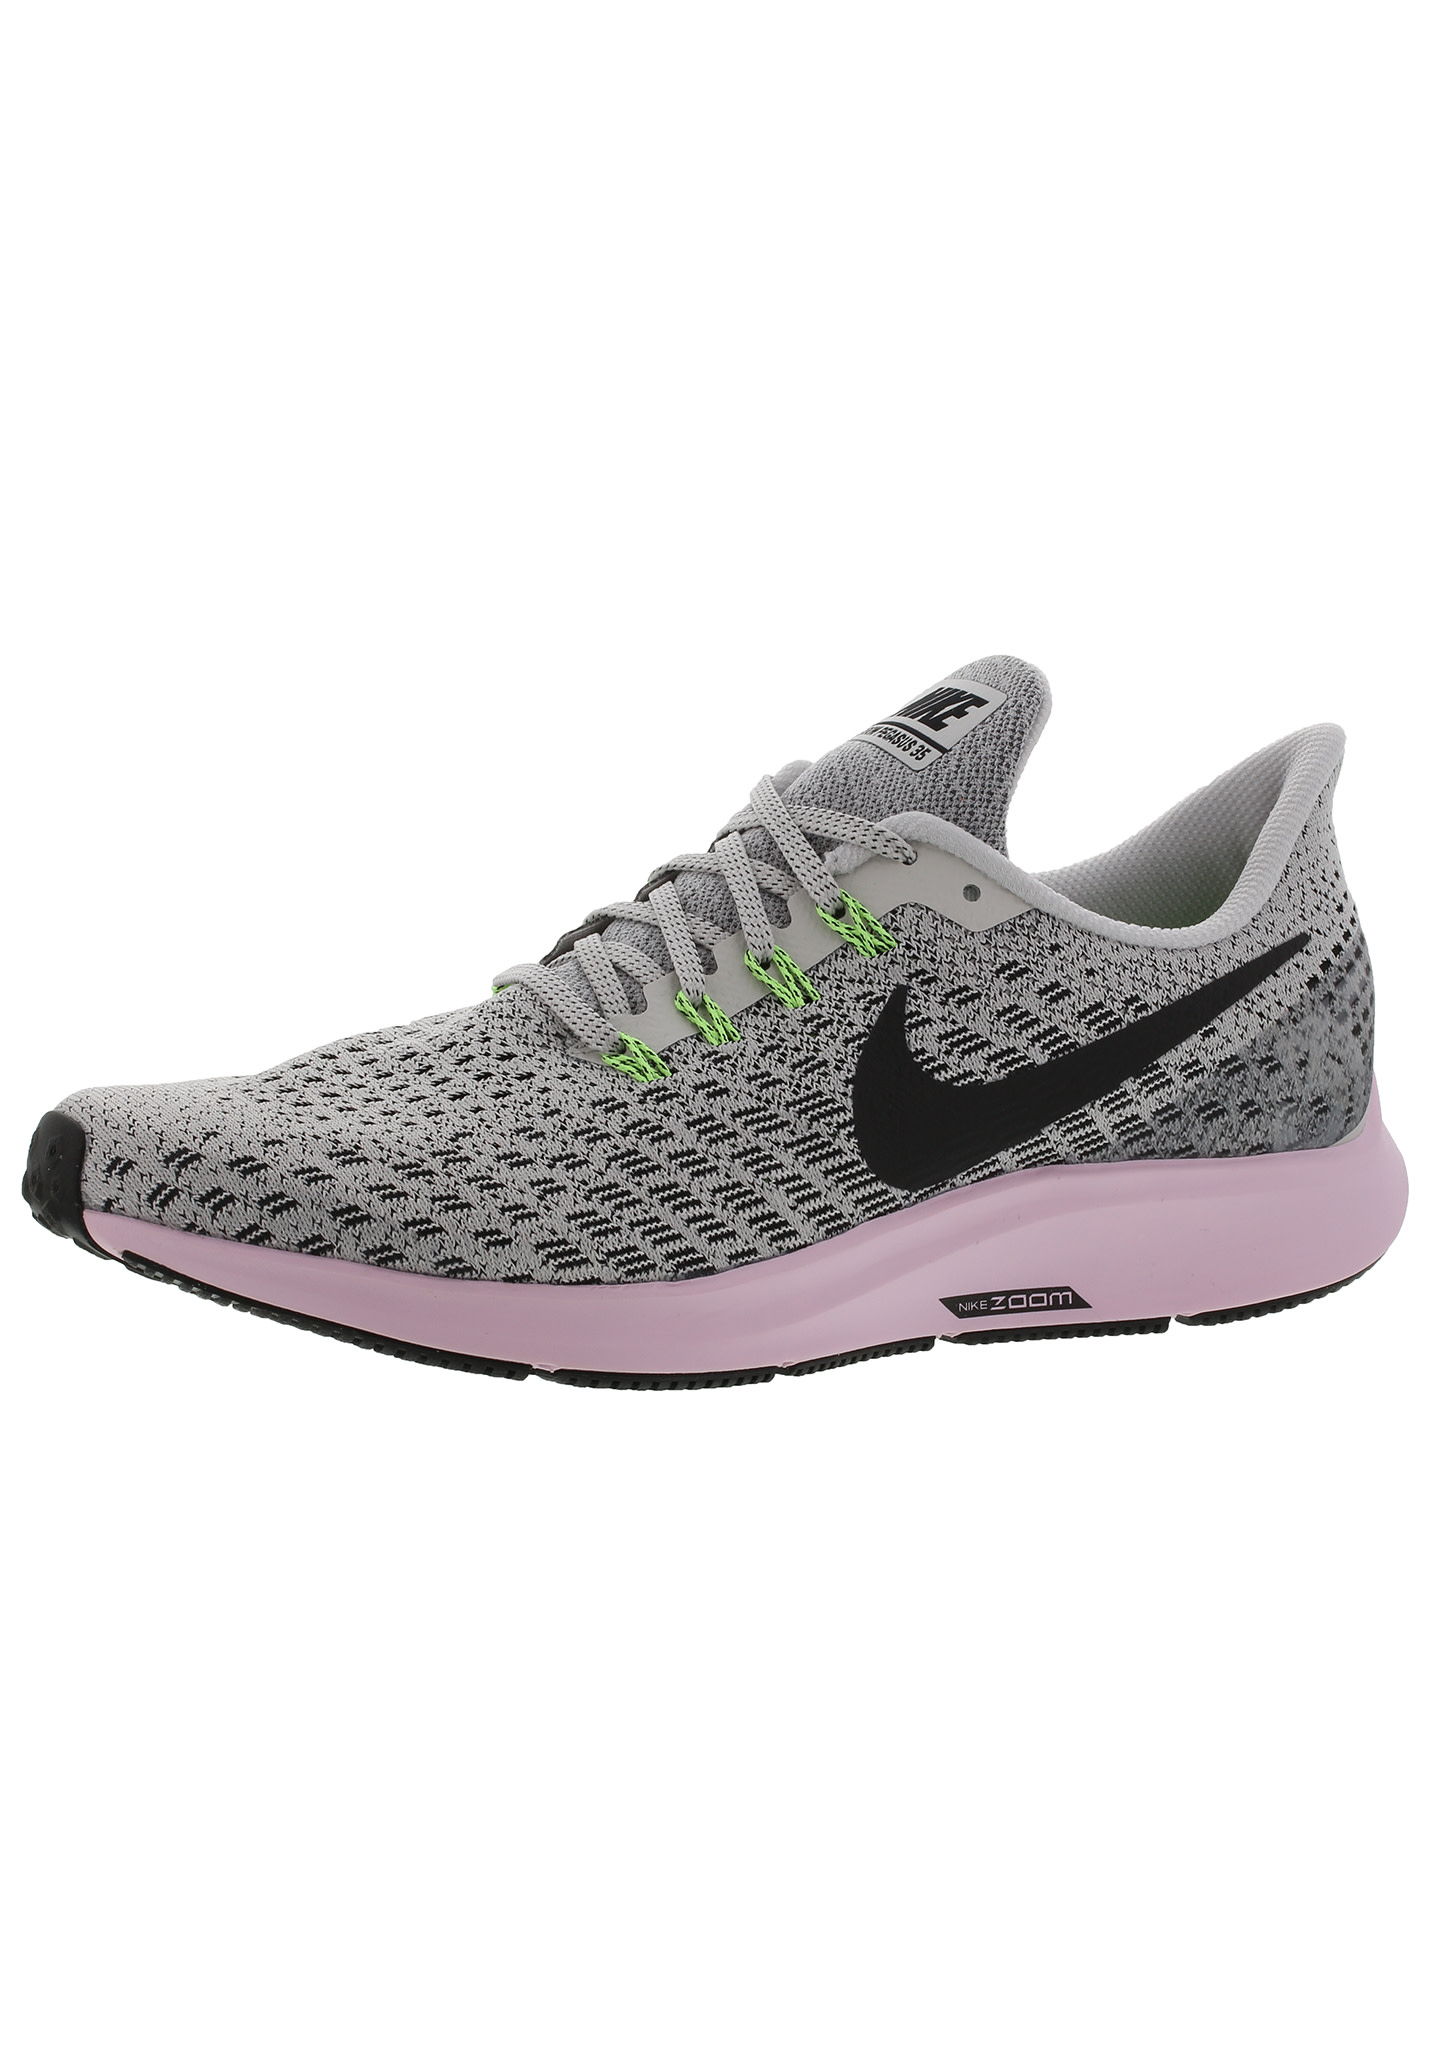 hot sale online 6d6bf acae8 Nike Air Zoom Pegasus 35 - Chaussures running pour Femme - Gris   21RUN